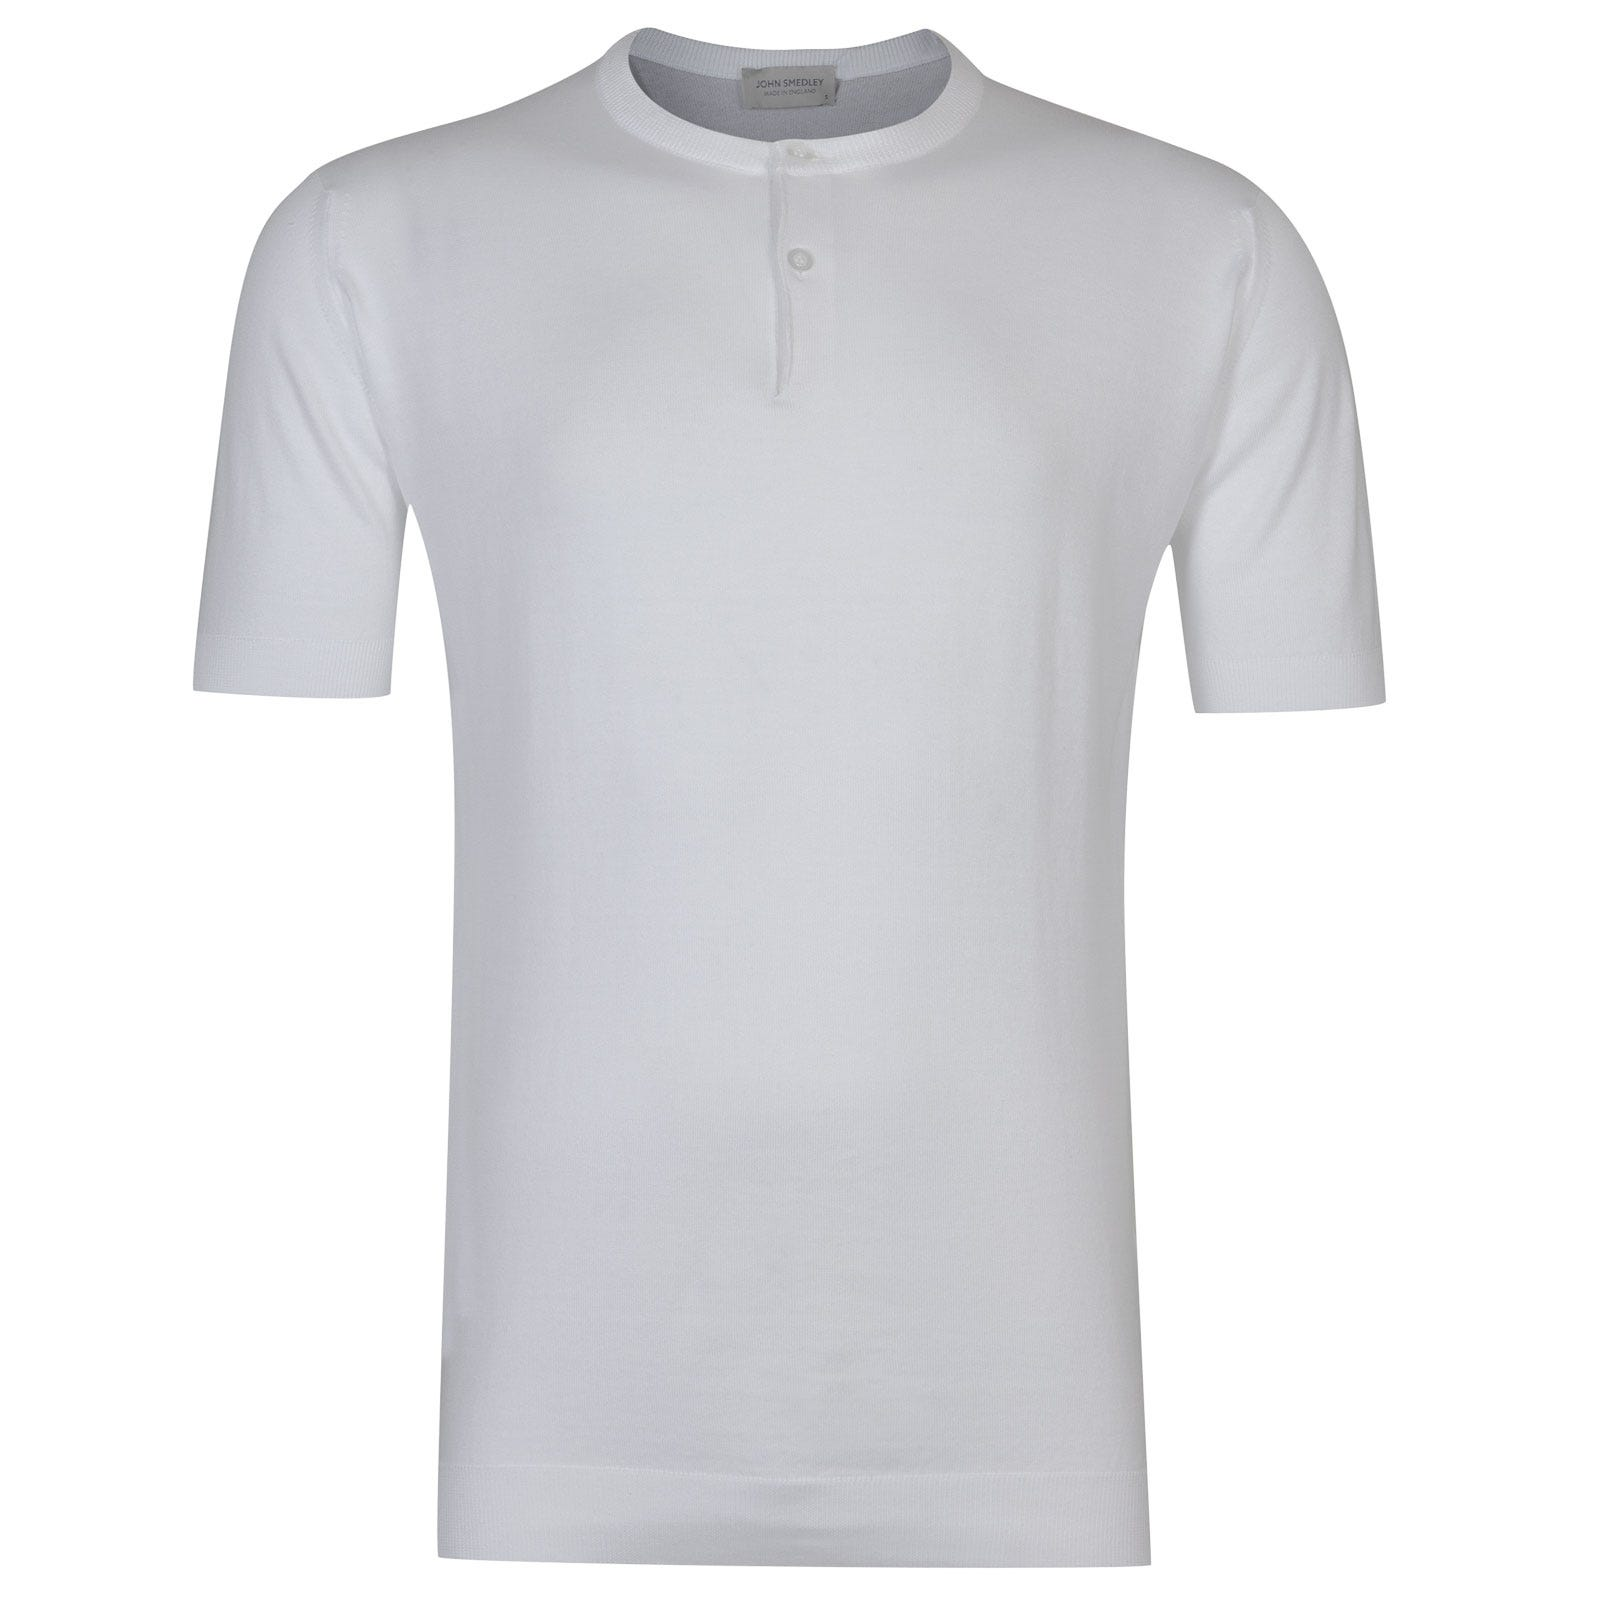 John Smedley Bennett Sea Island Cotton T-shirt in White-XXL